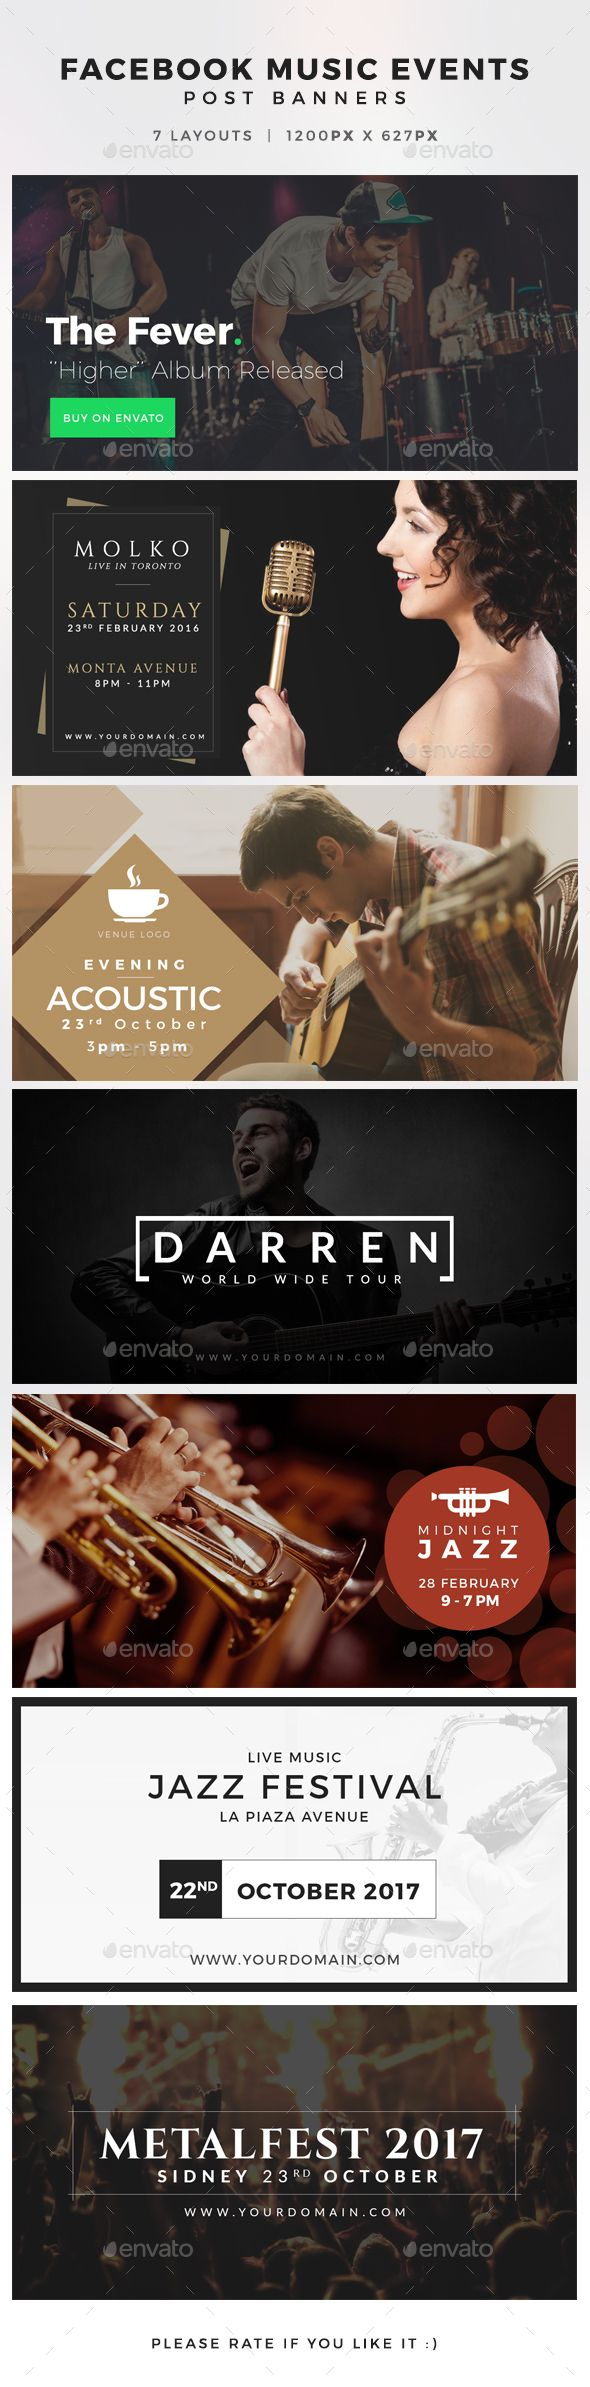 Facebook Music Events Post Banners Template PSD #design Download: http://graphicriver.net/item/facebook-music-events-post-banners/14038782?ref=ksioks